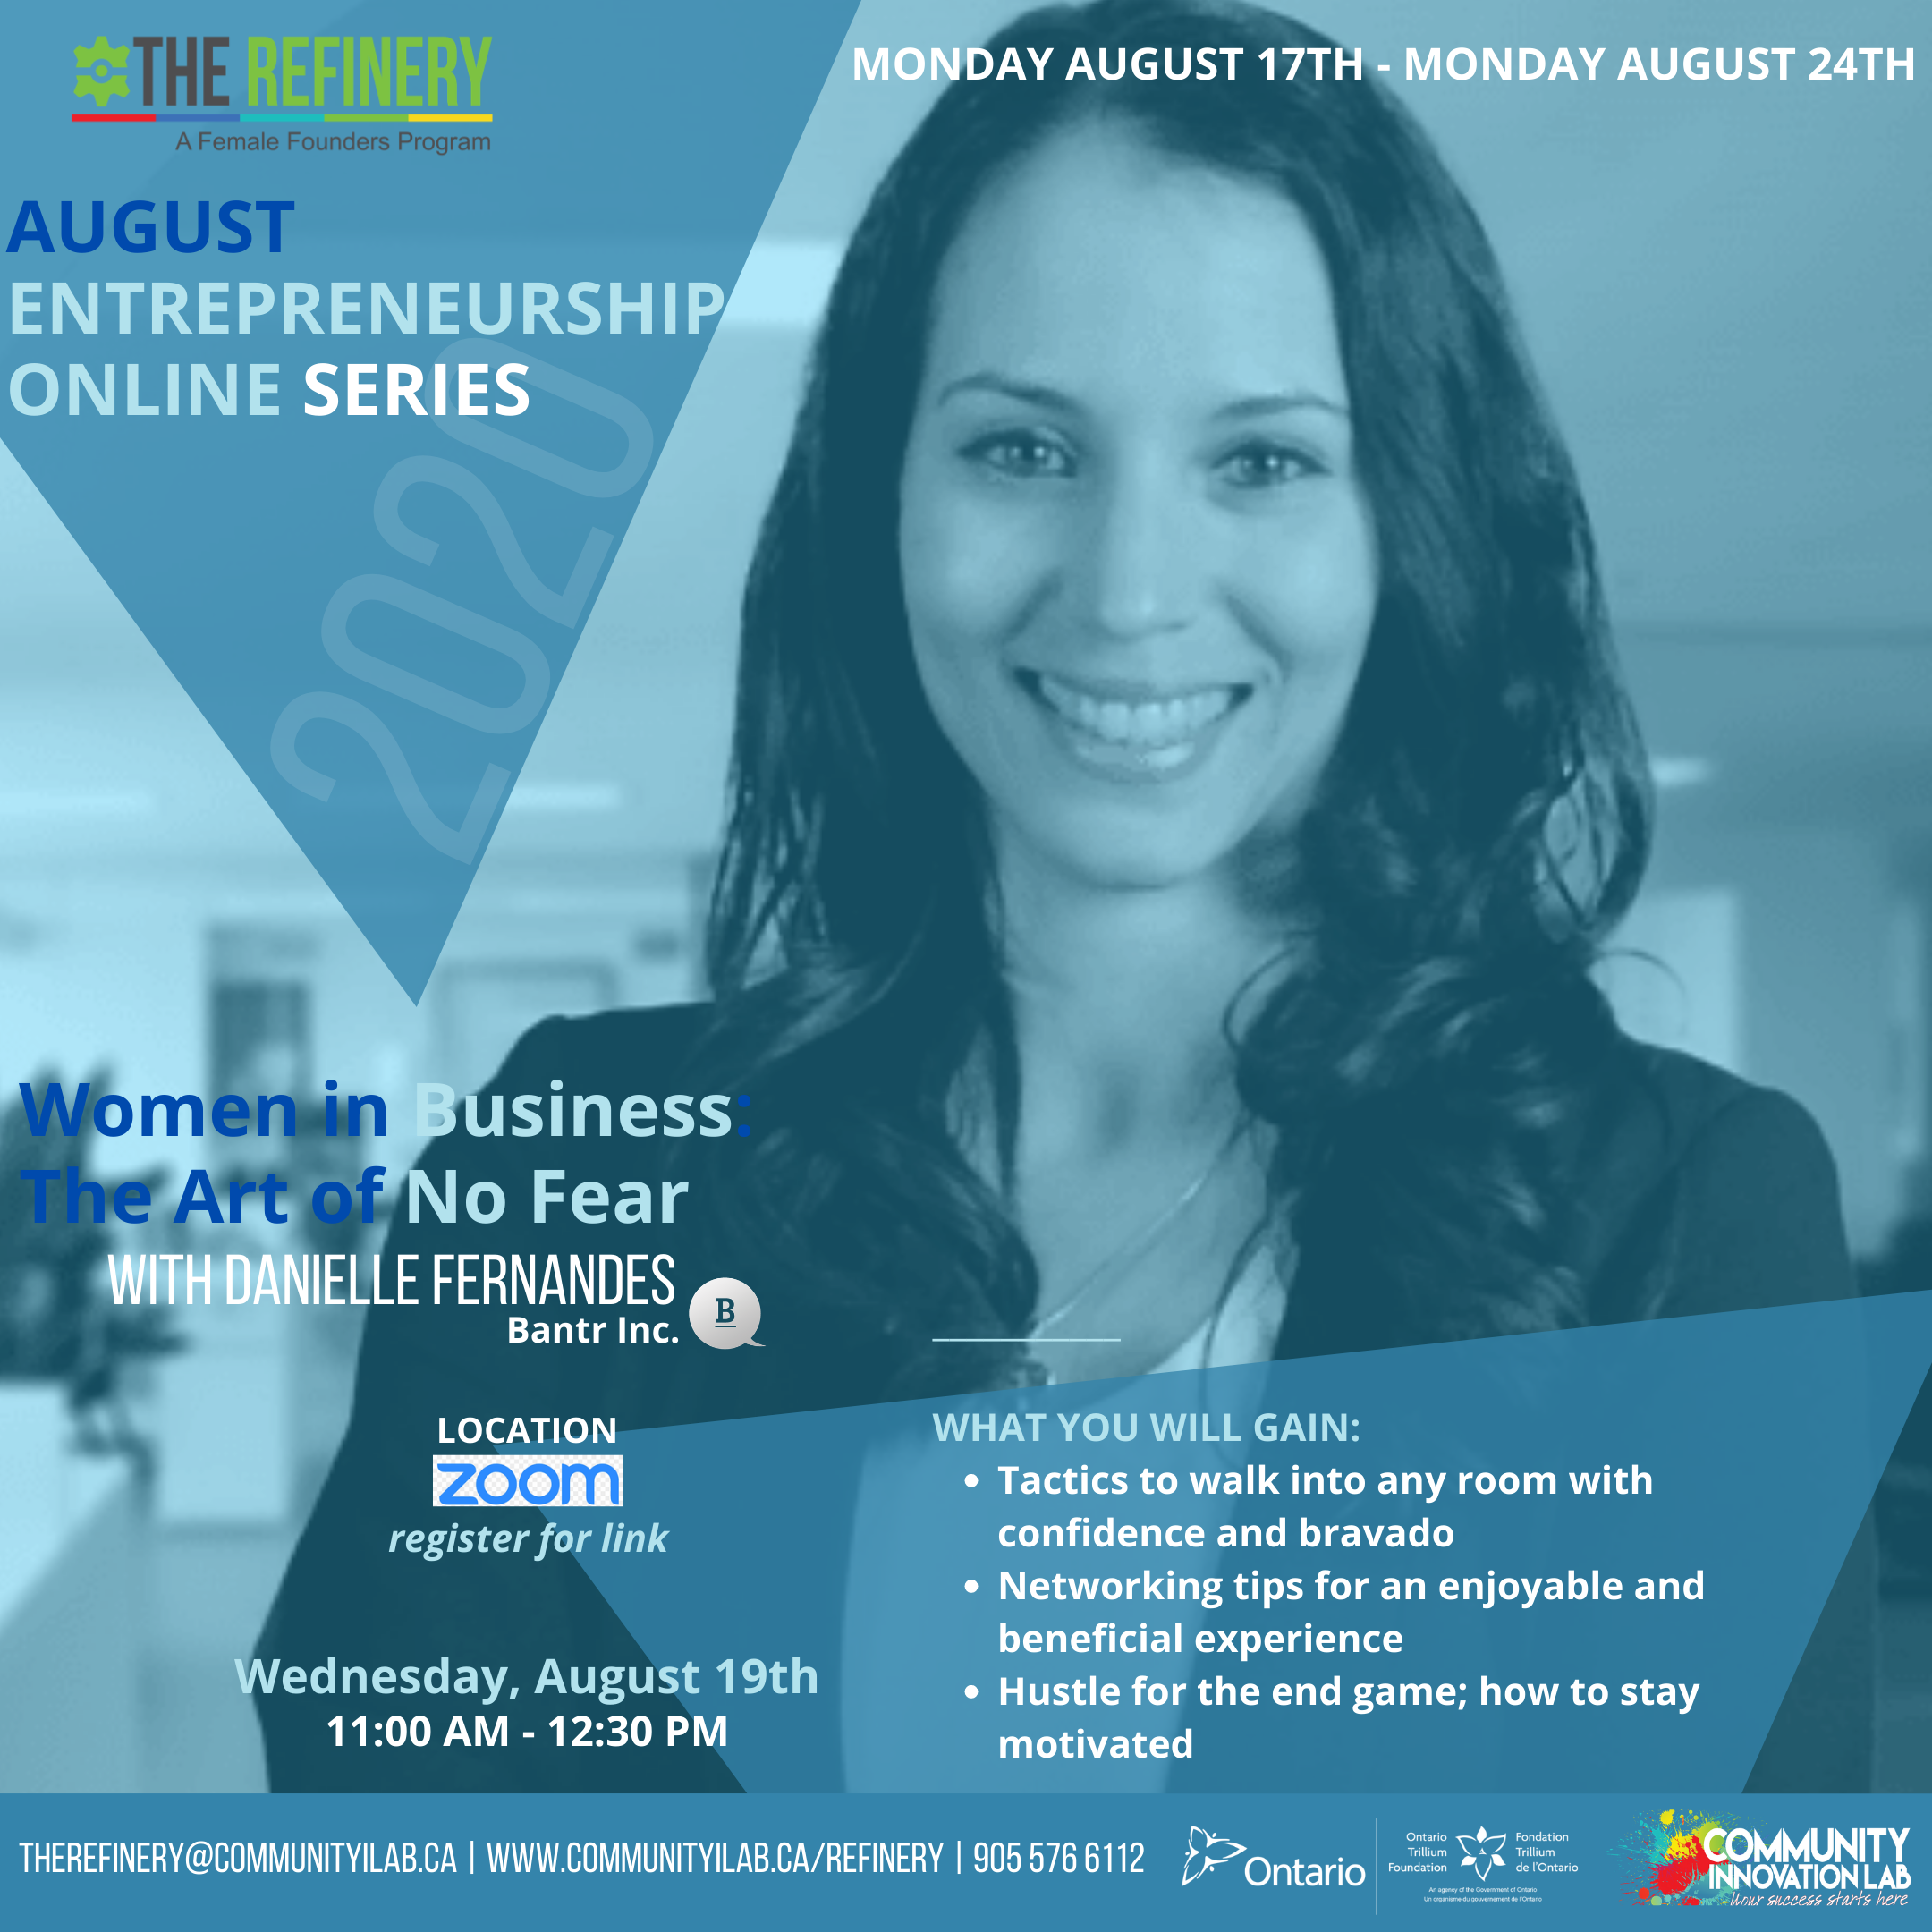 August Entrepreneurship Online Series: Women in Business & The Art of No Fear